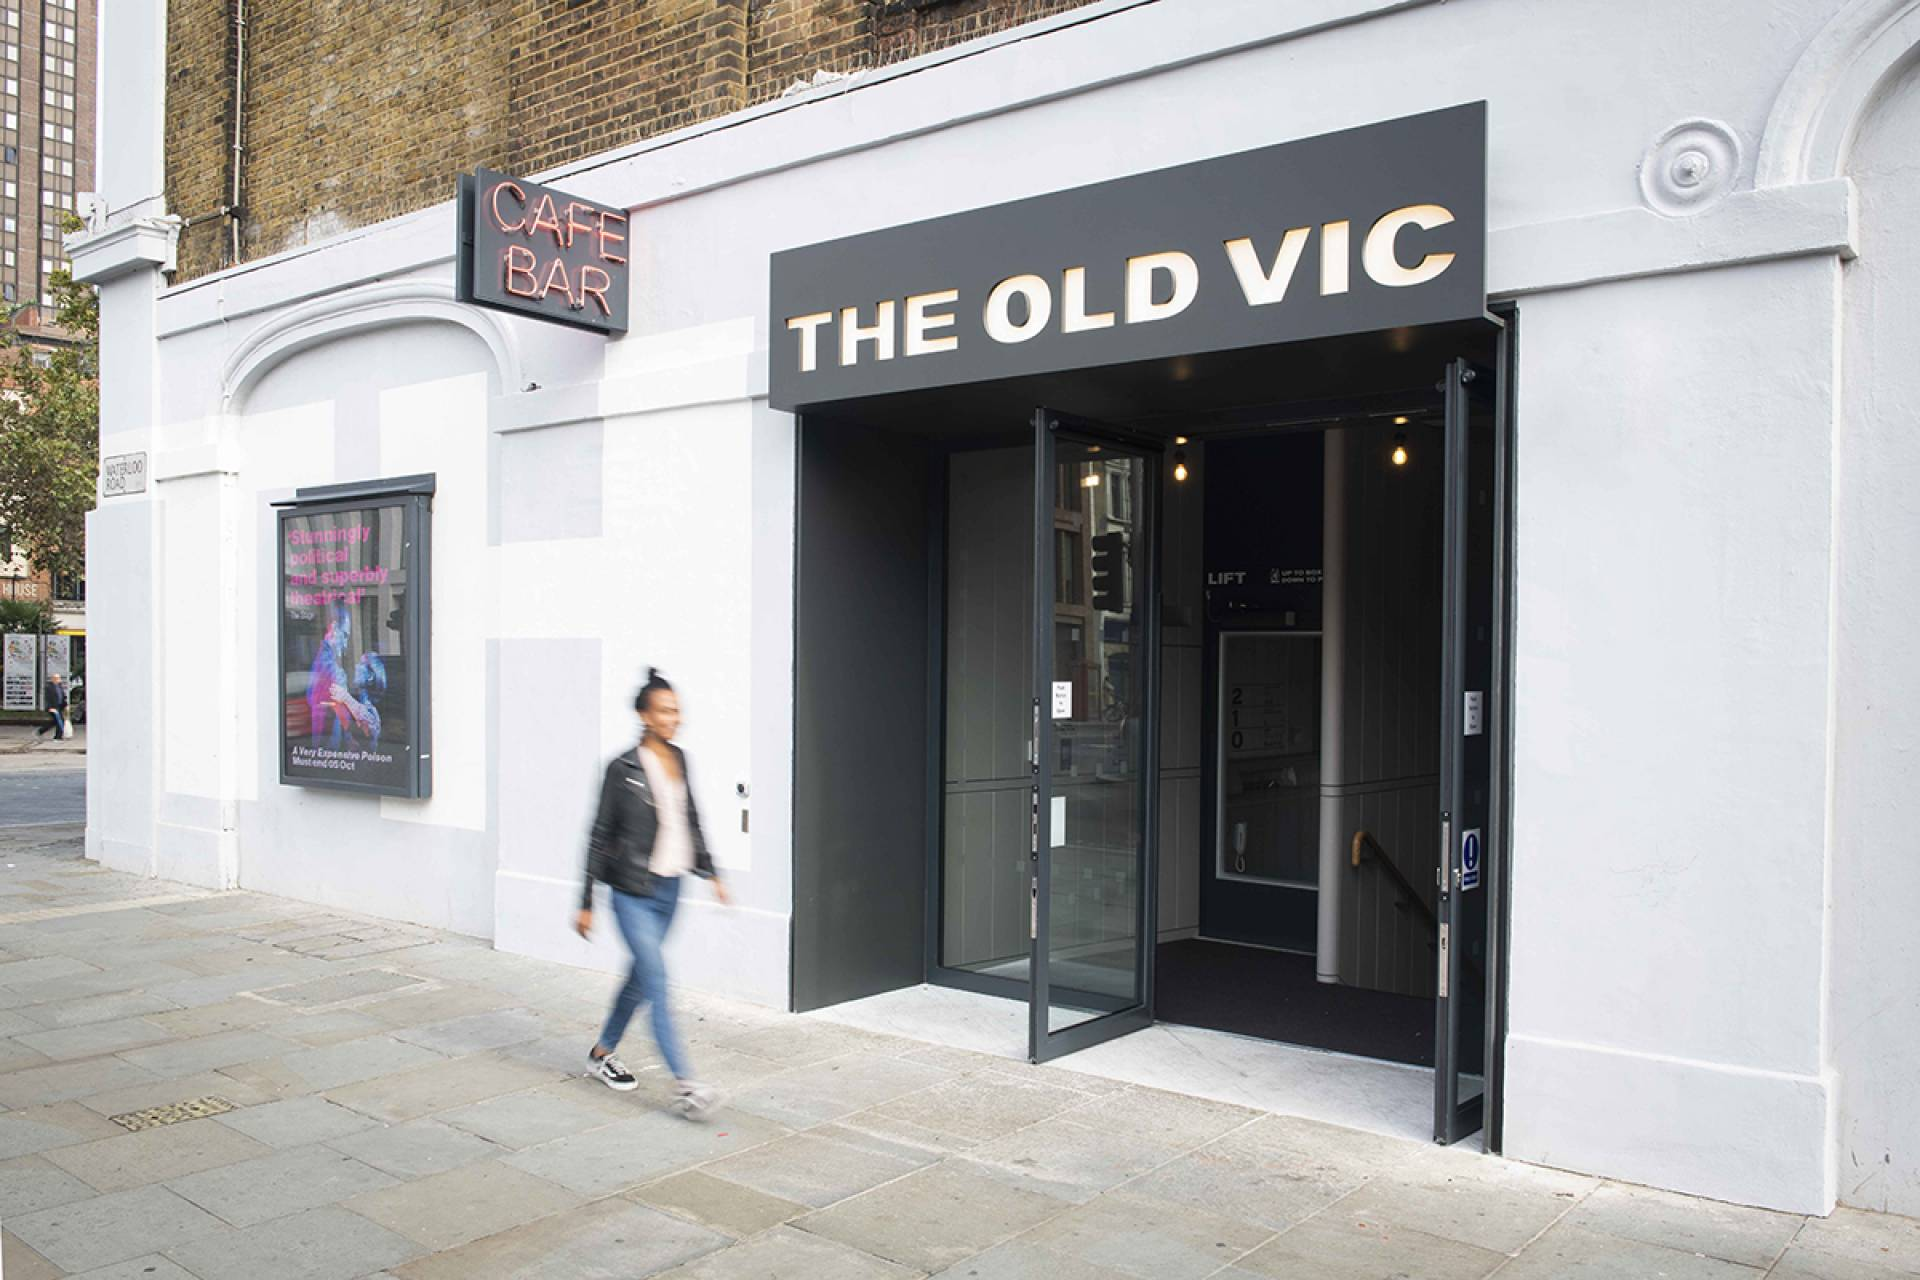 The Old Vic Cafe Entrance